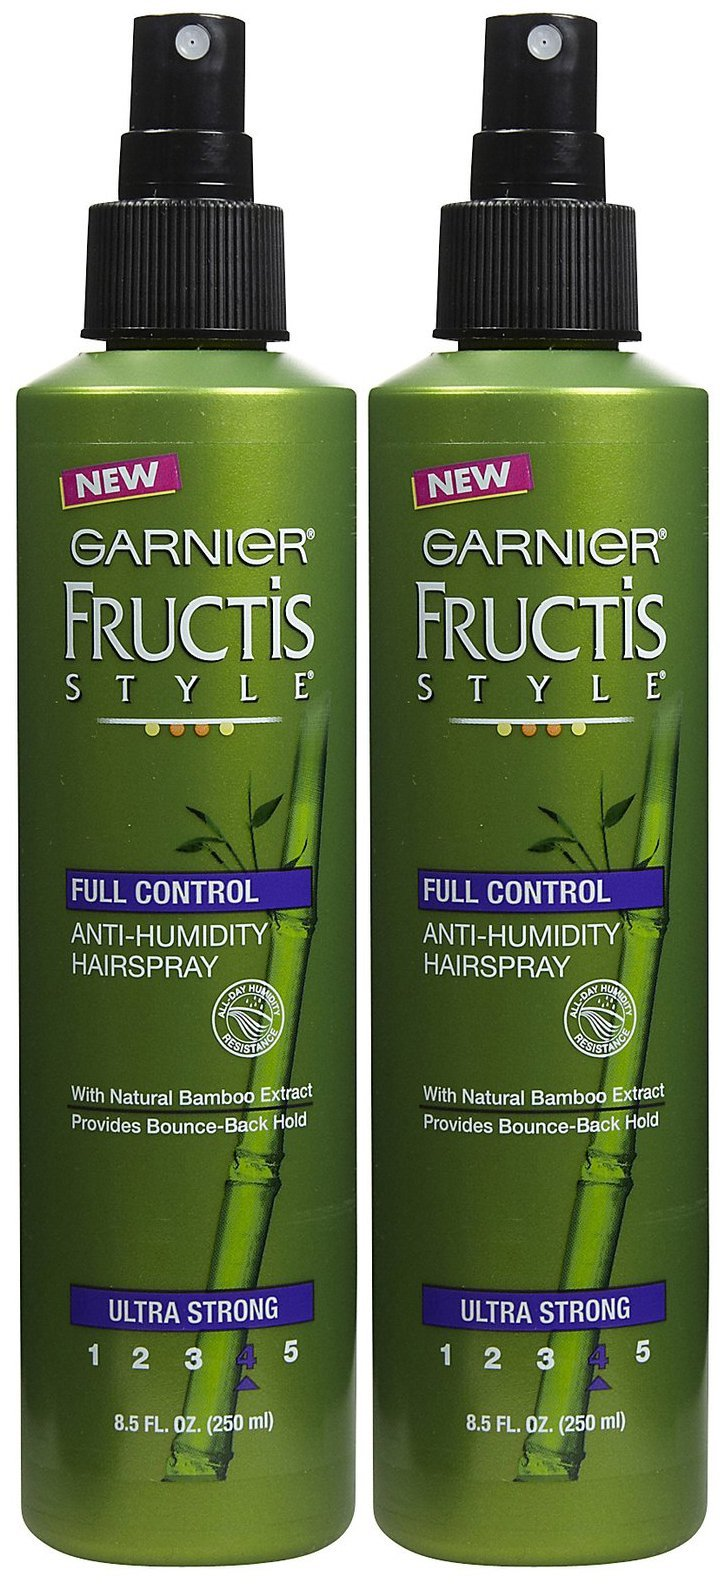 Garnier Fructis Full Control Non-Aerosol Hairspray, Ultra Strong Hold, 8.5 oz, 2 pk